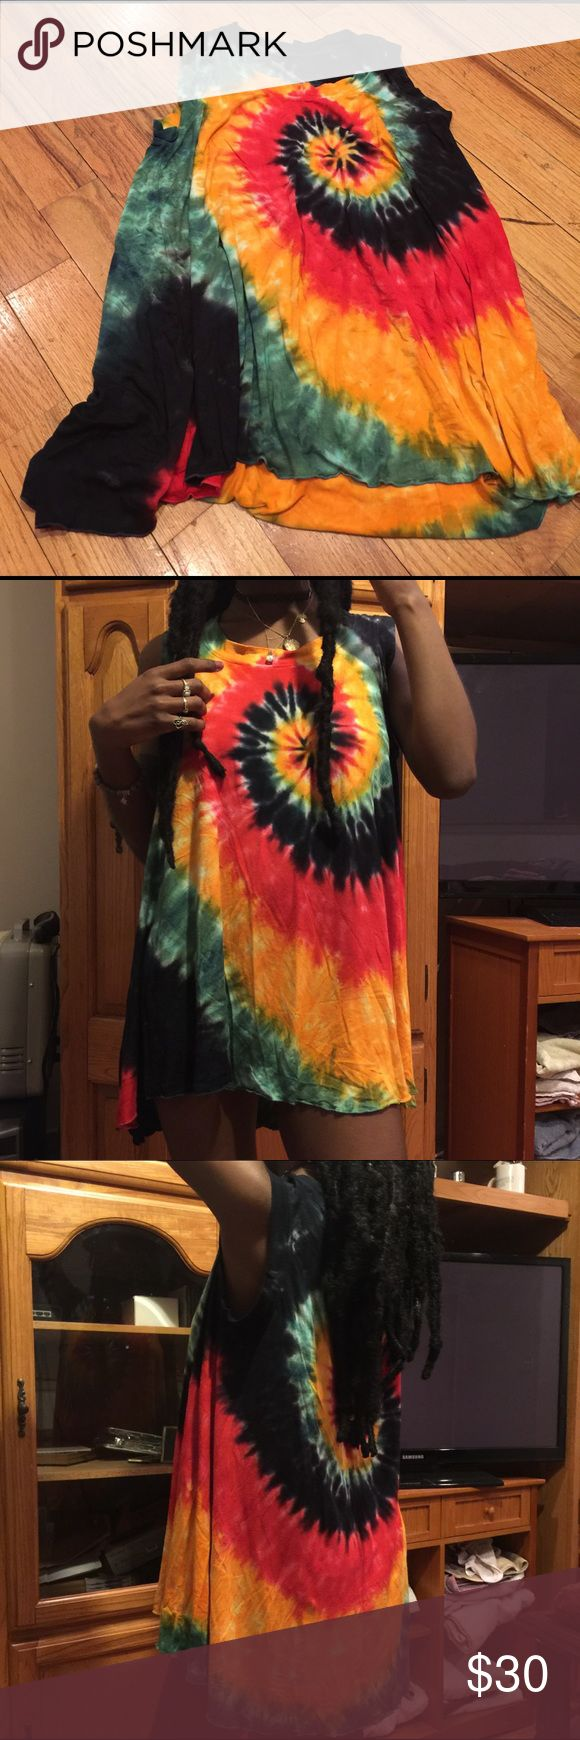 Rasta Shirt Can be worn as a dress. Only worn twice. Purchased from Dolls Kill. In great condition Tops